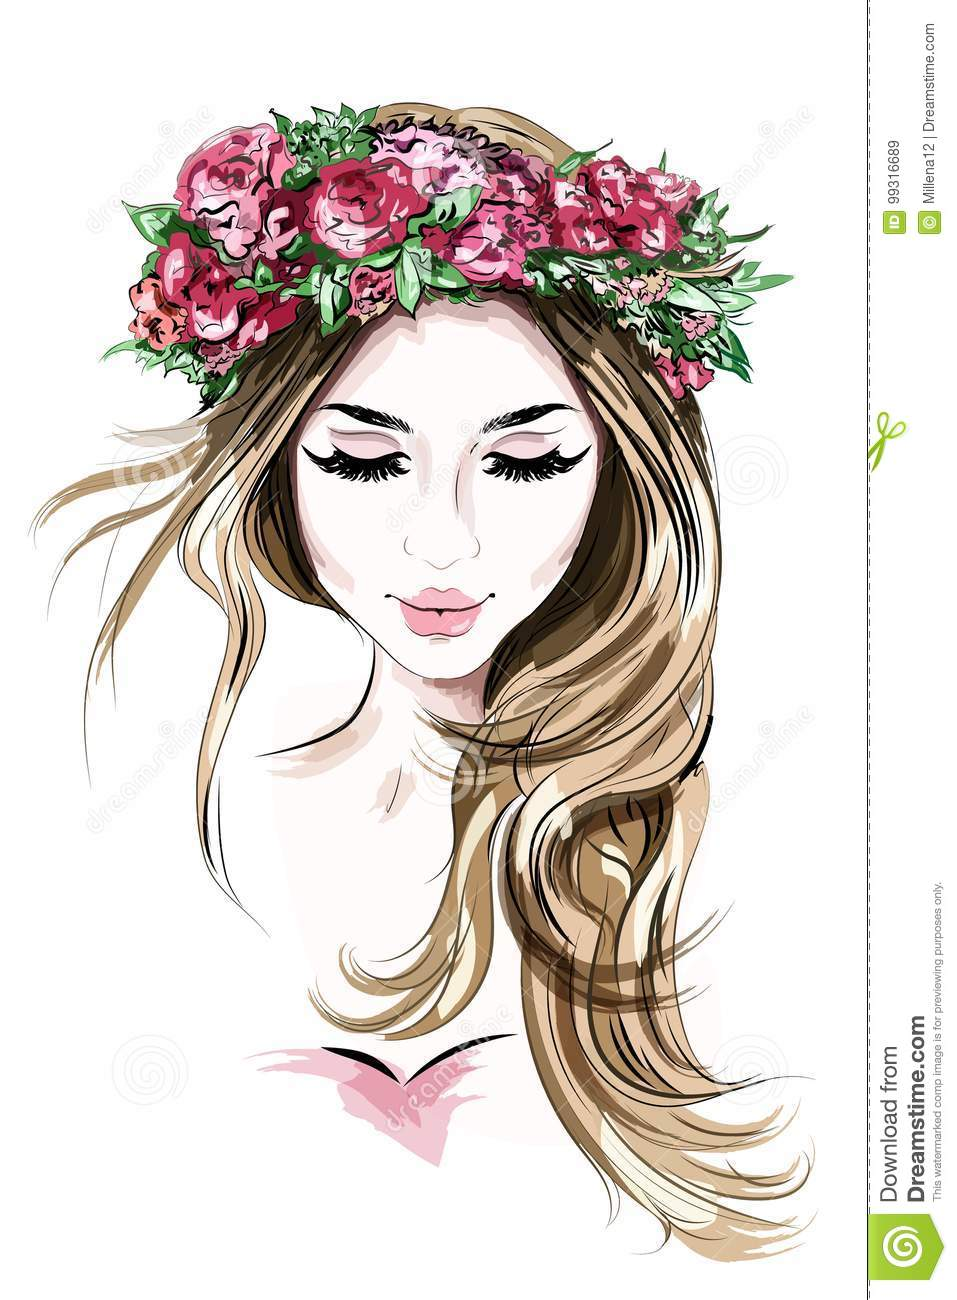 Hand drawn beautiful young woman in flower wreath cute girl with long hair sketch